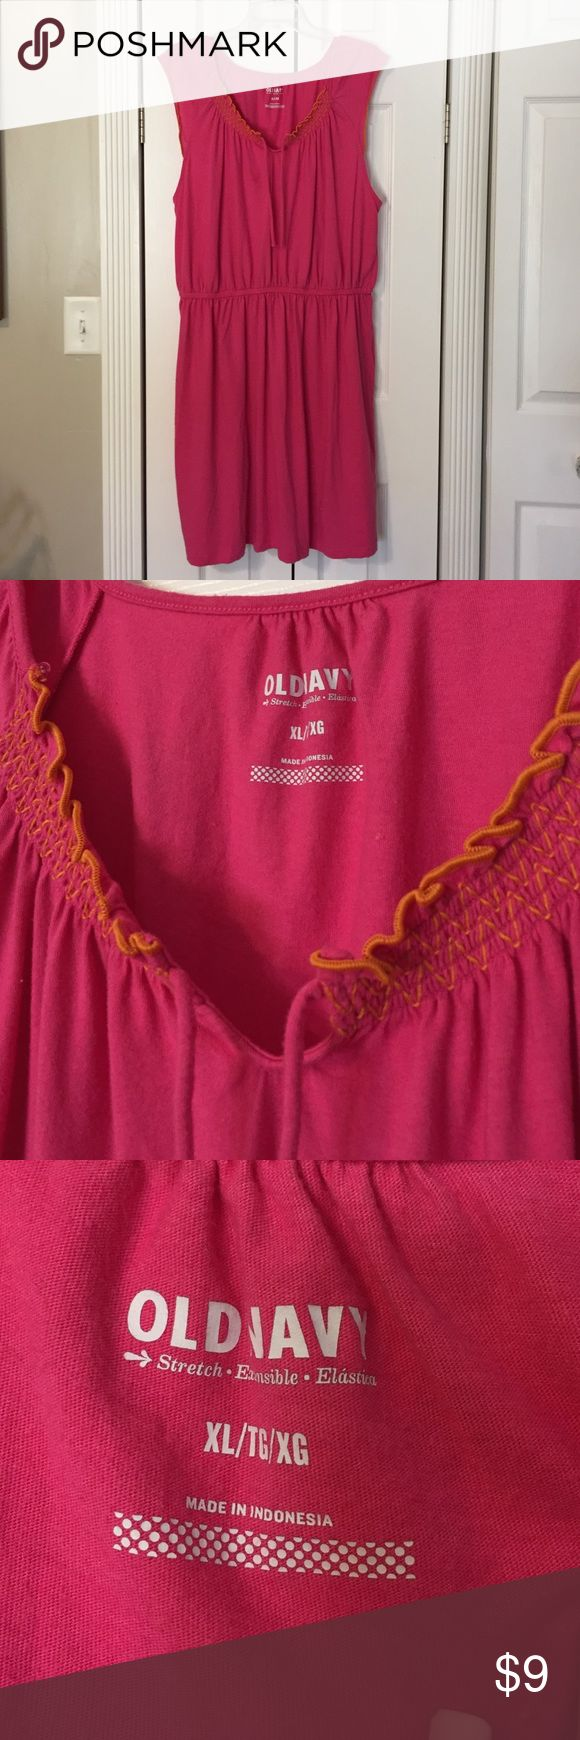 Hot Pink Sundress w/ Orange Stitching stitching is on front (photo 2) and ON cap sleeve trim. Old Navy Dresses